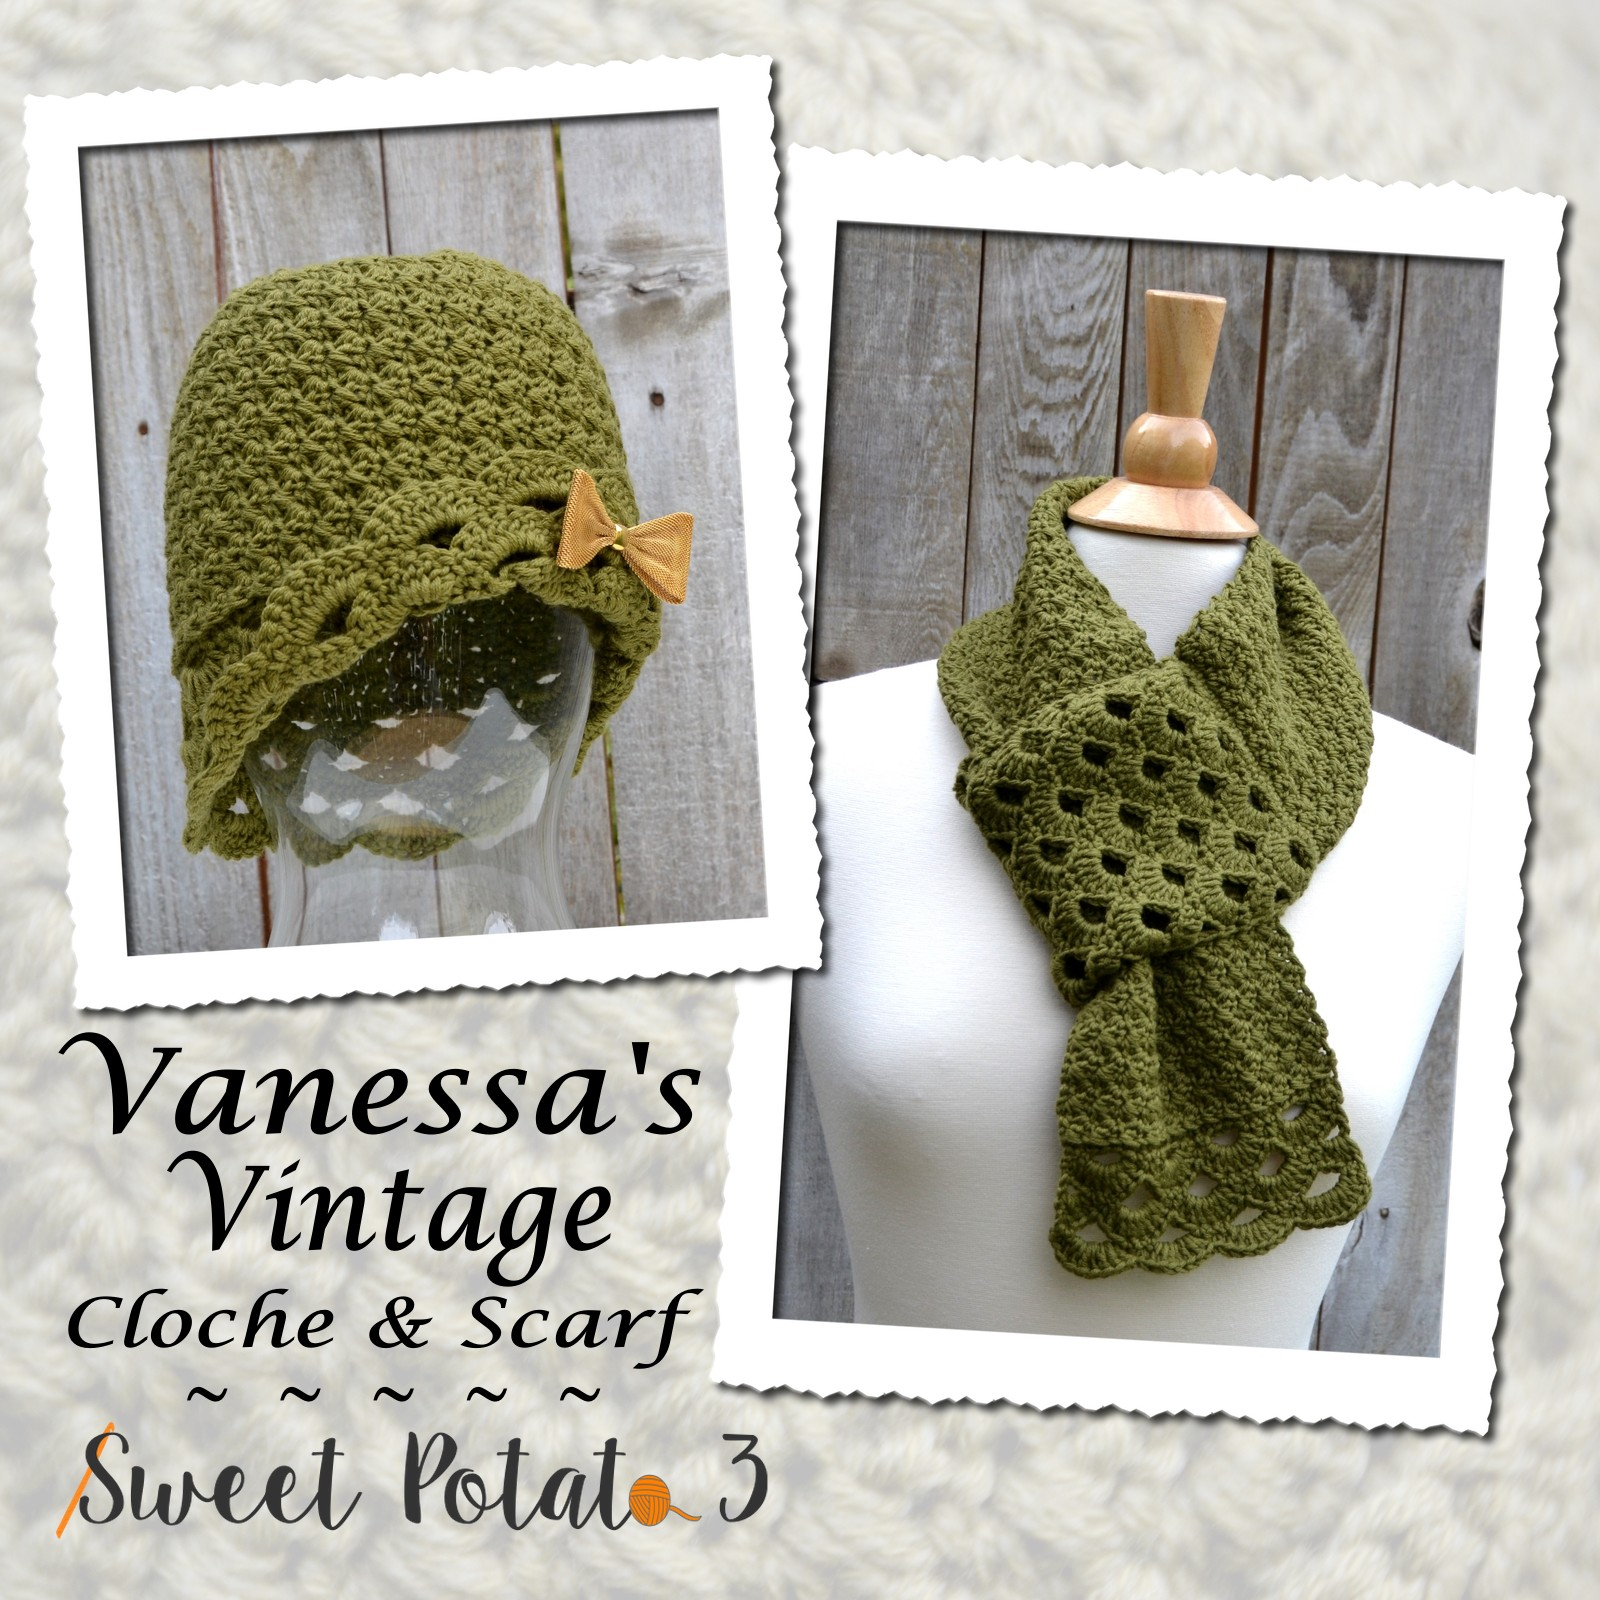 You are currently viewing Vanessa's Vintage Cloche & Scarf